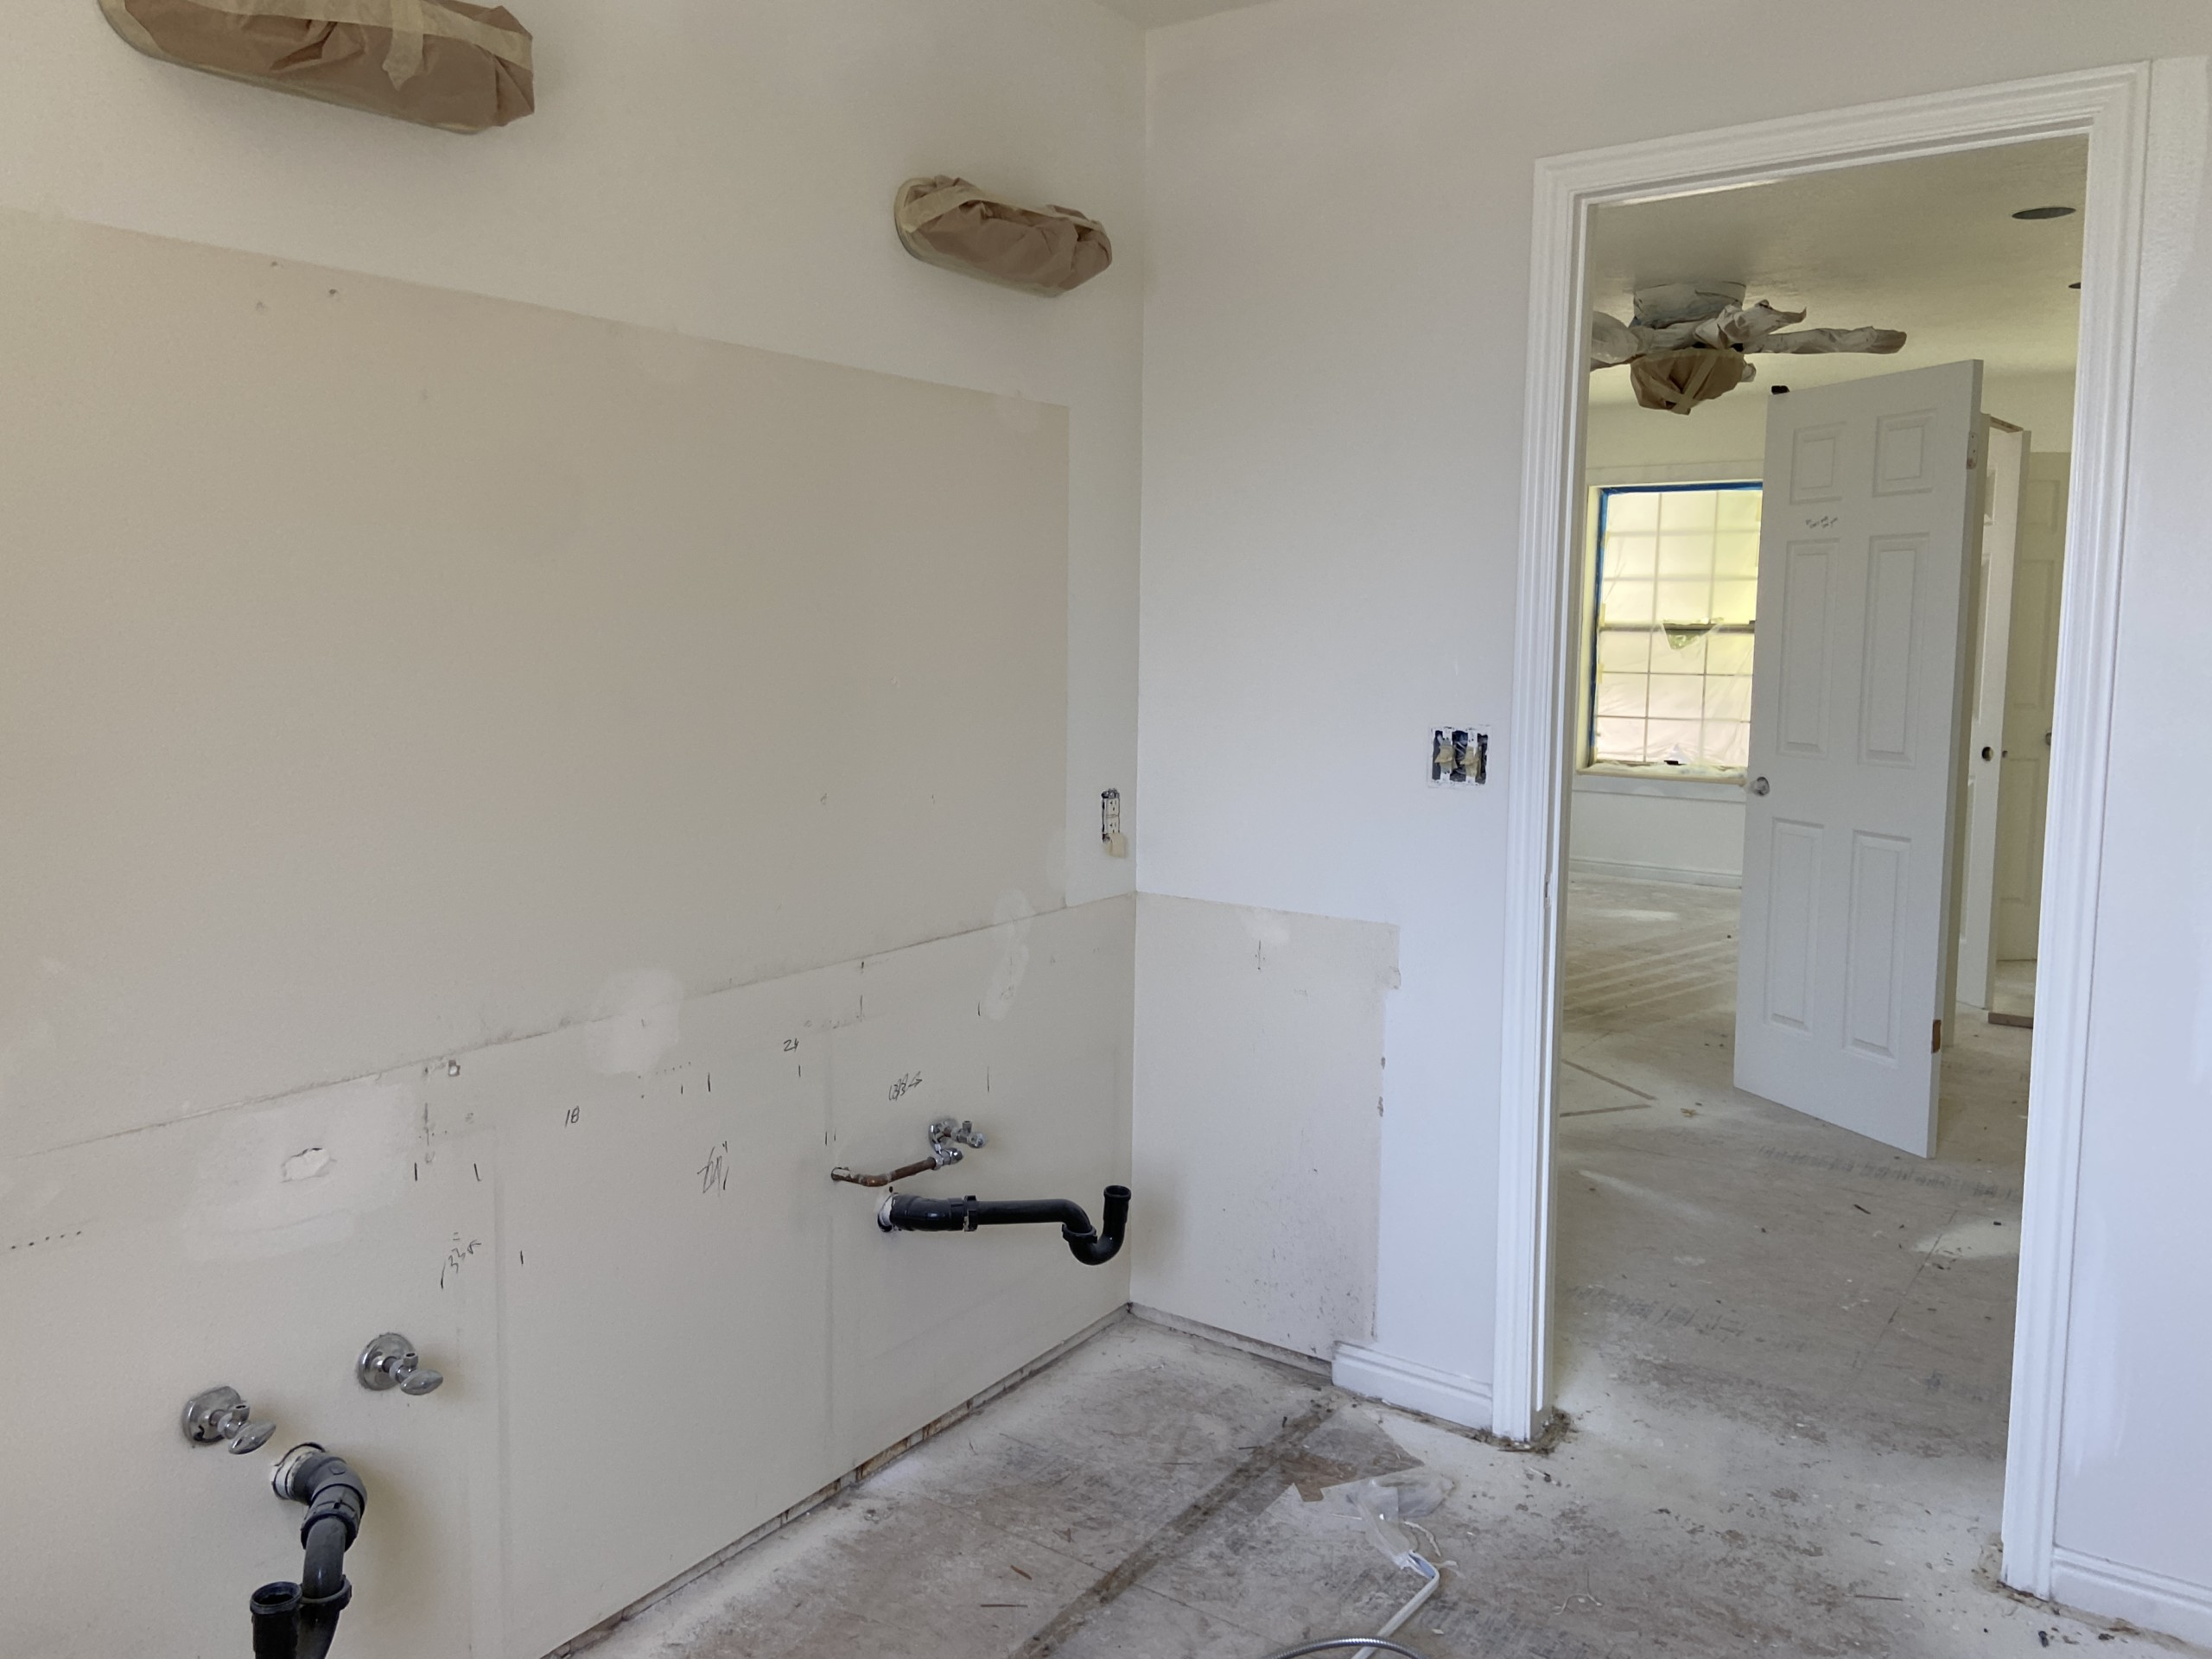 a blank, unfinished room with sheetrock walls and a dusty subfloor. There's a doorway that leads to another unfinished space in the image. One of the walls has mysterious plumbing coming out of it.